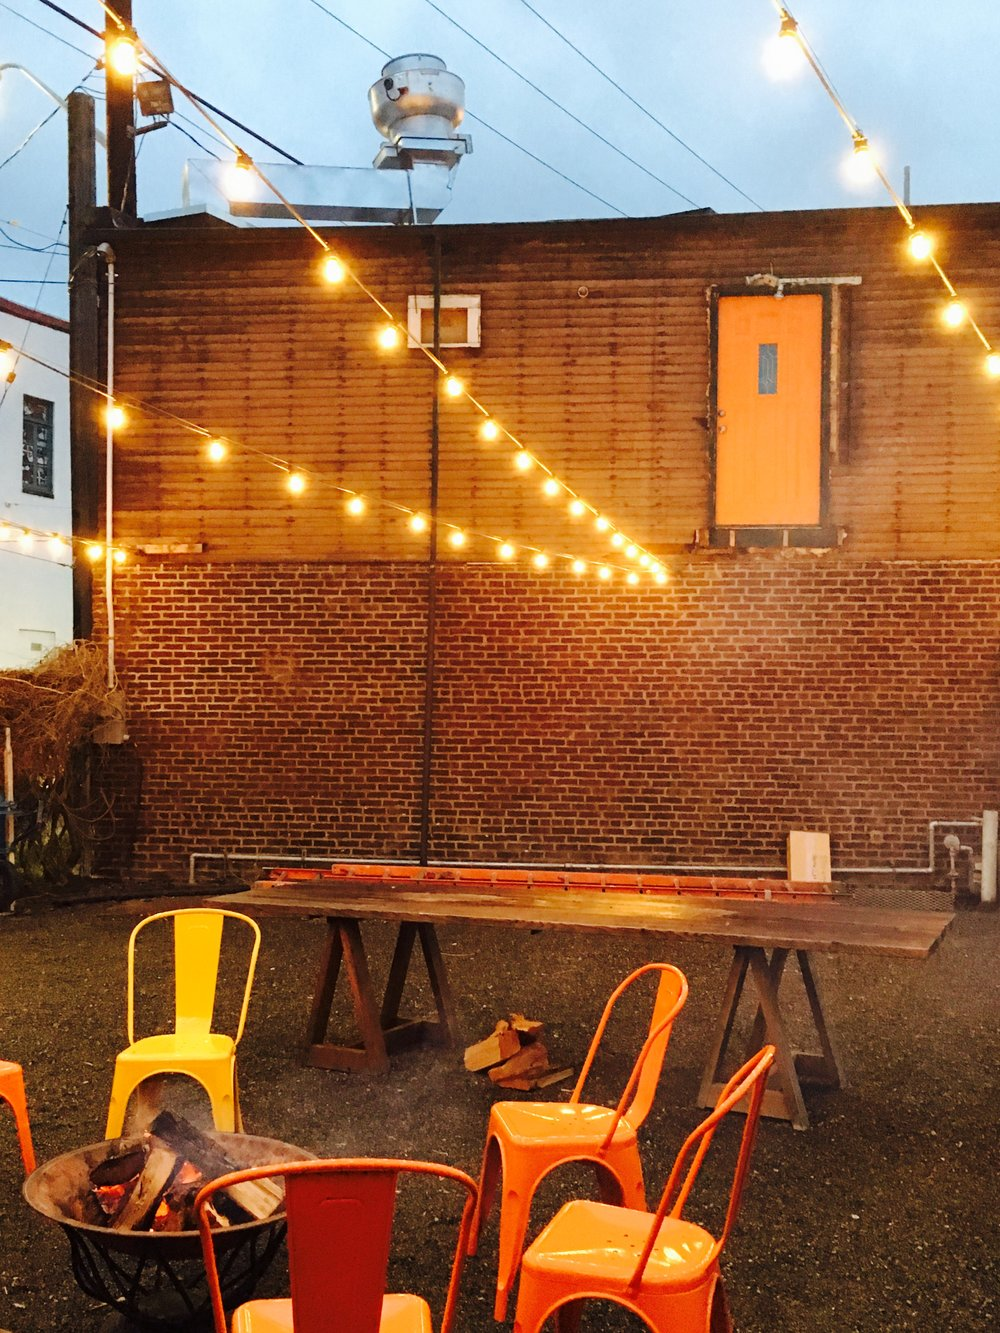 Ciudad Grill Patio: Kids Welcome